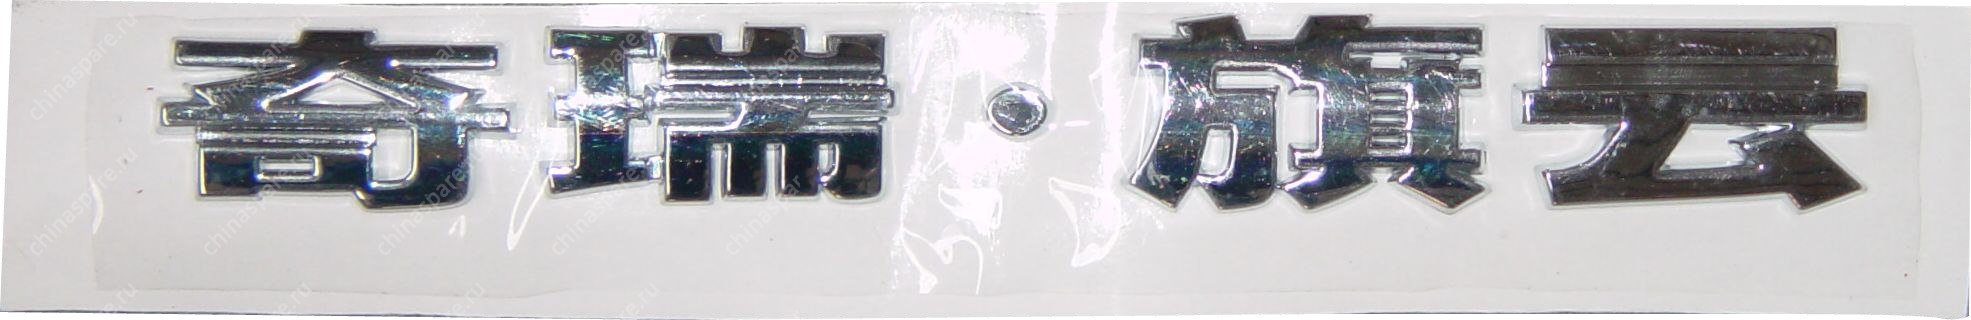 Name plate Chery Amulet